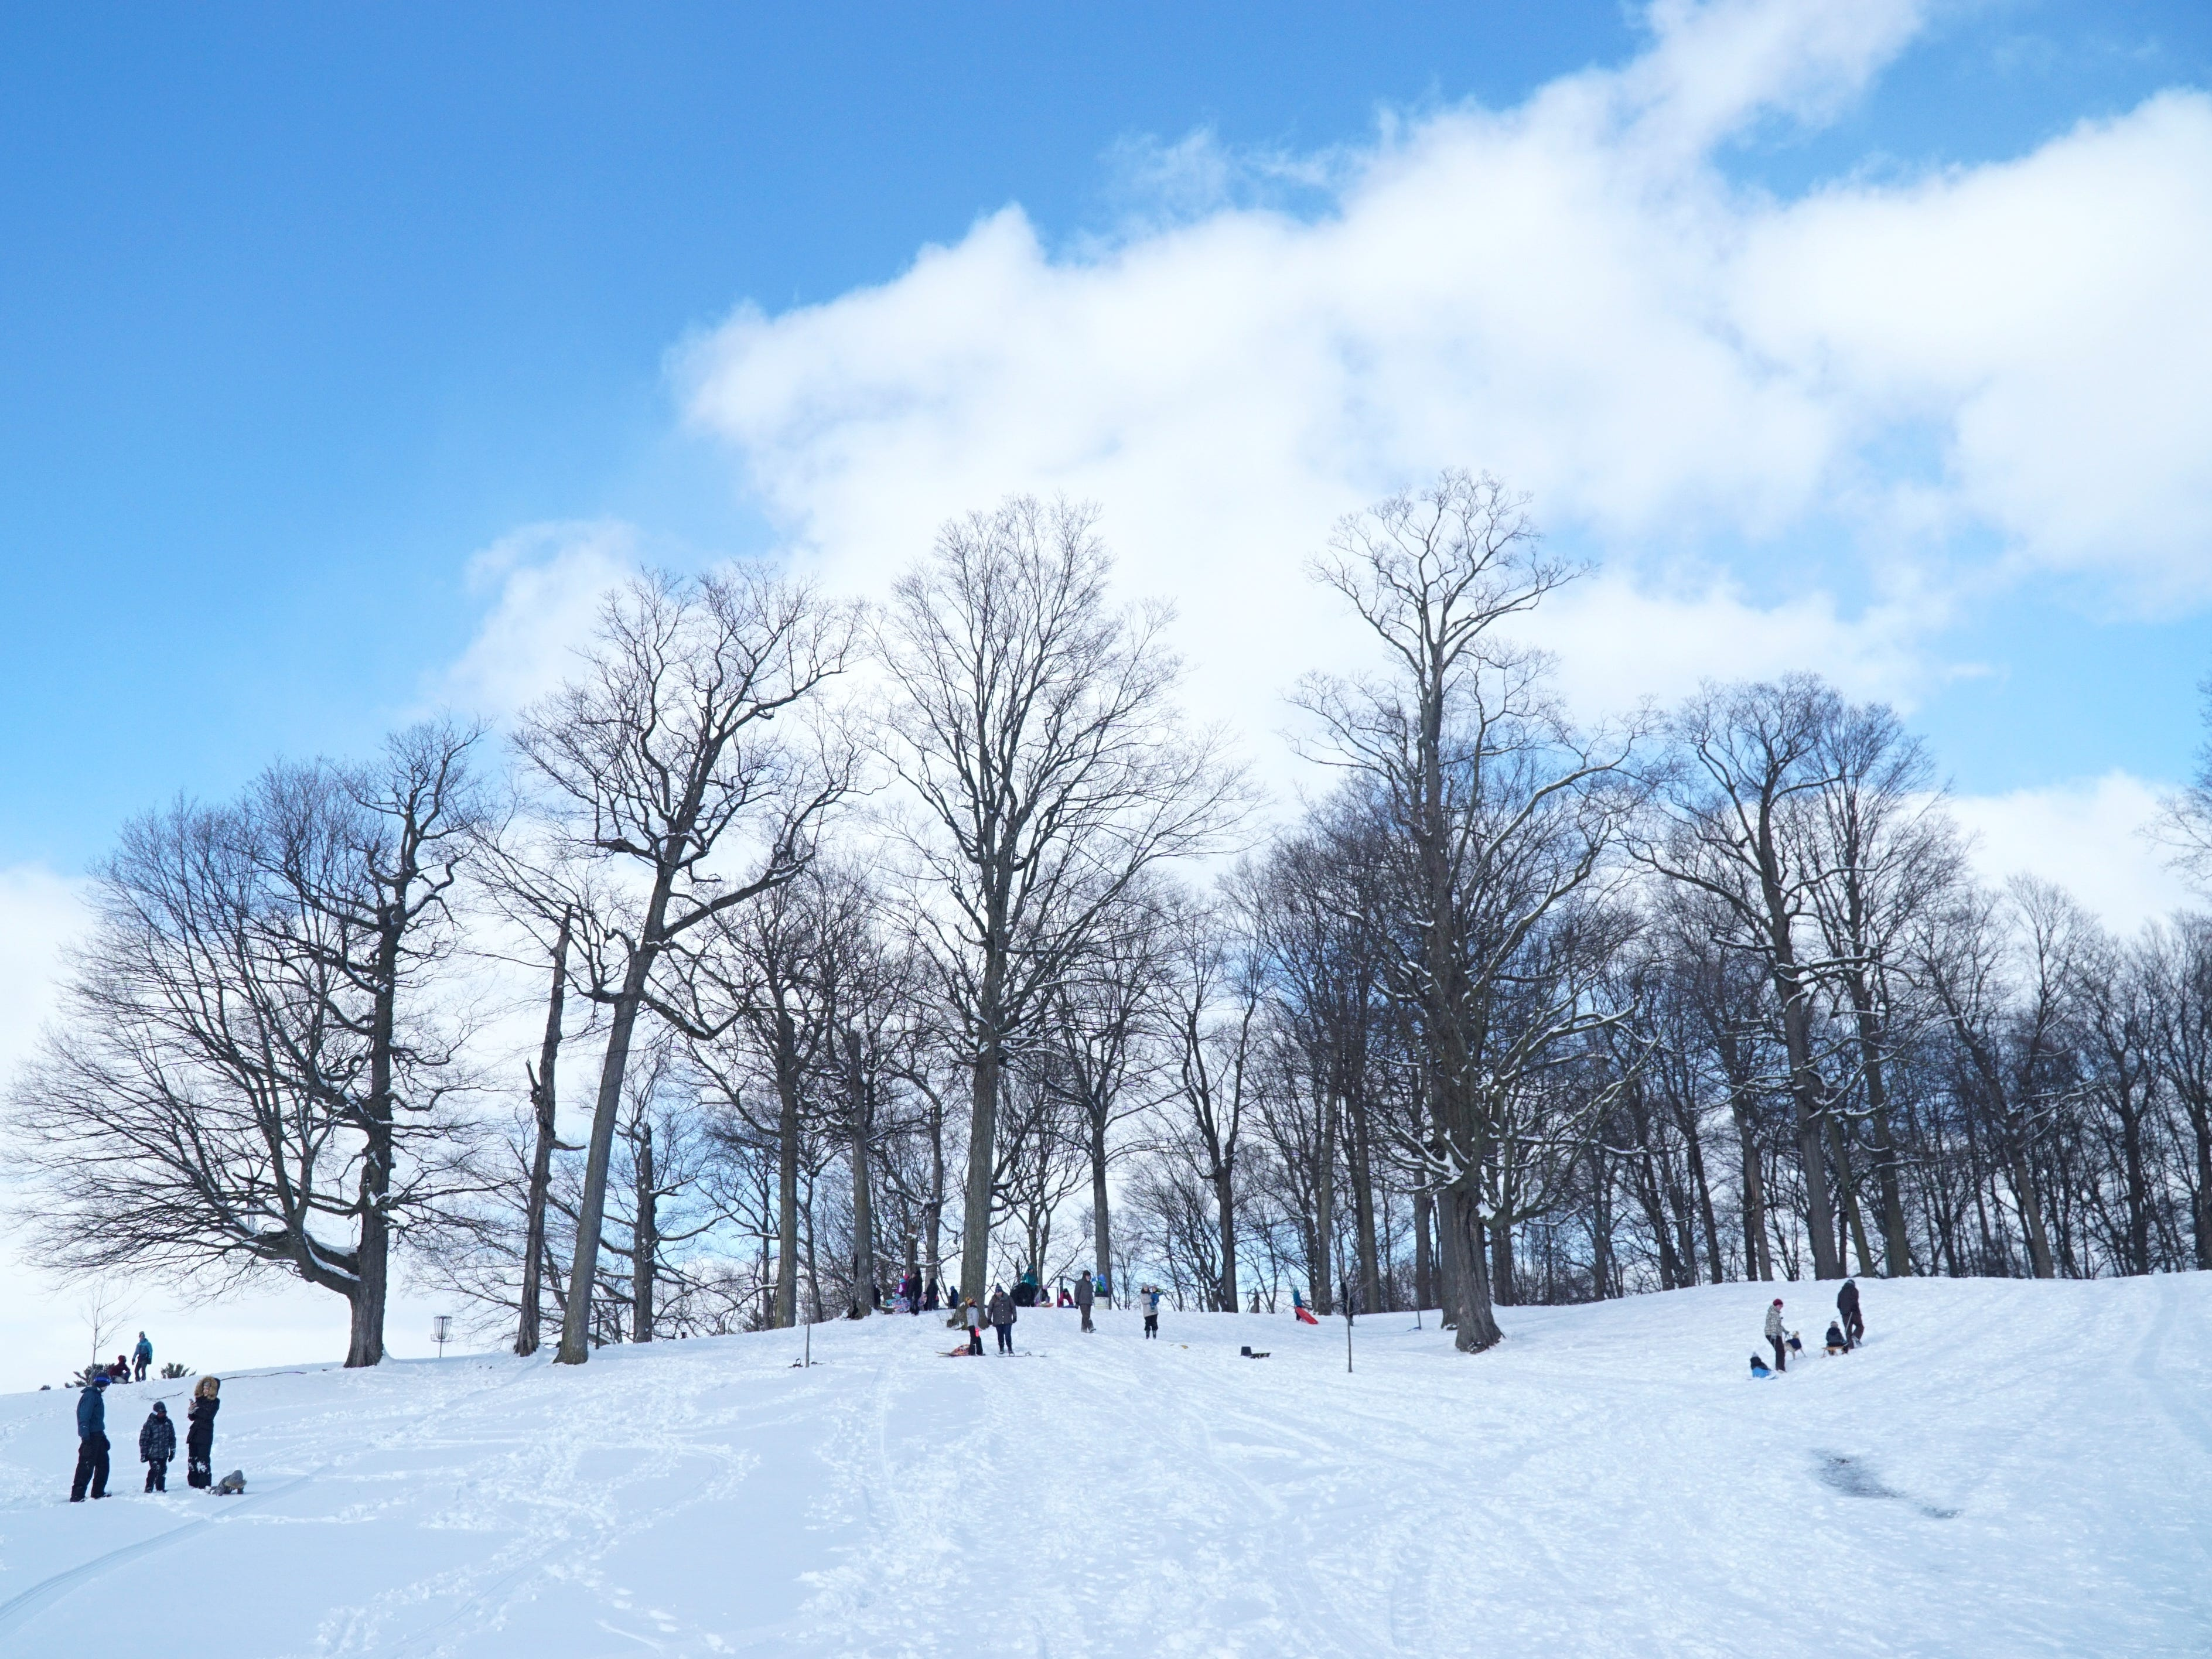 The hill at Hines Park's Cass Benton Recreation Area was very busy on Feb. 18 with plenty of sledders and snow-boarders.